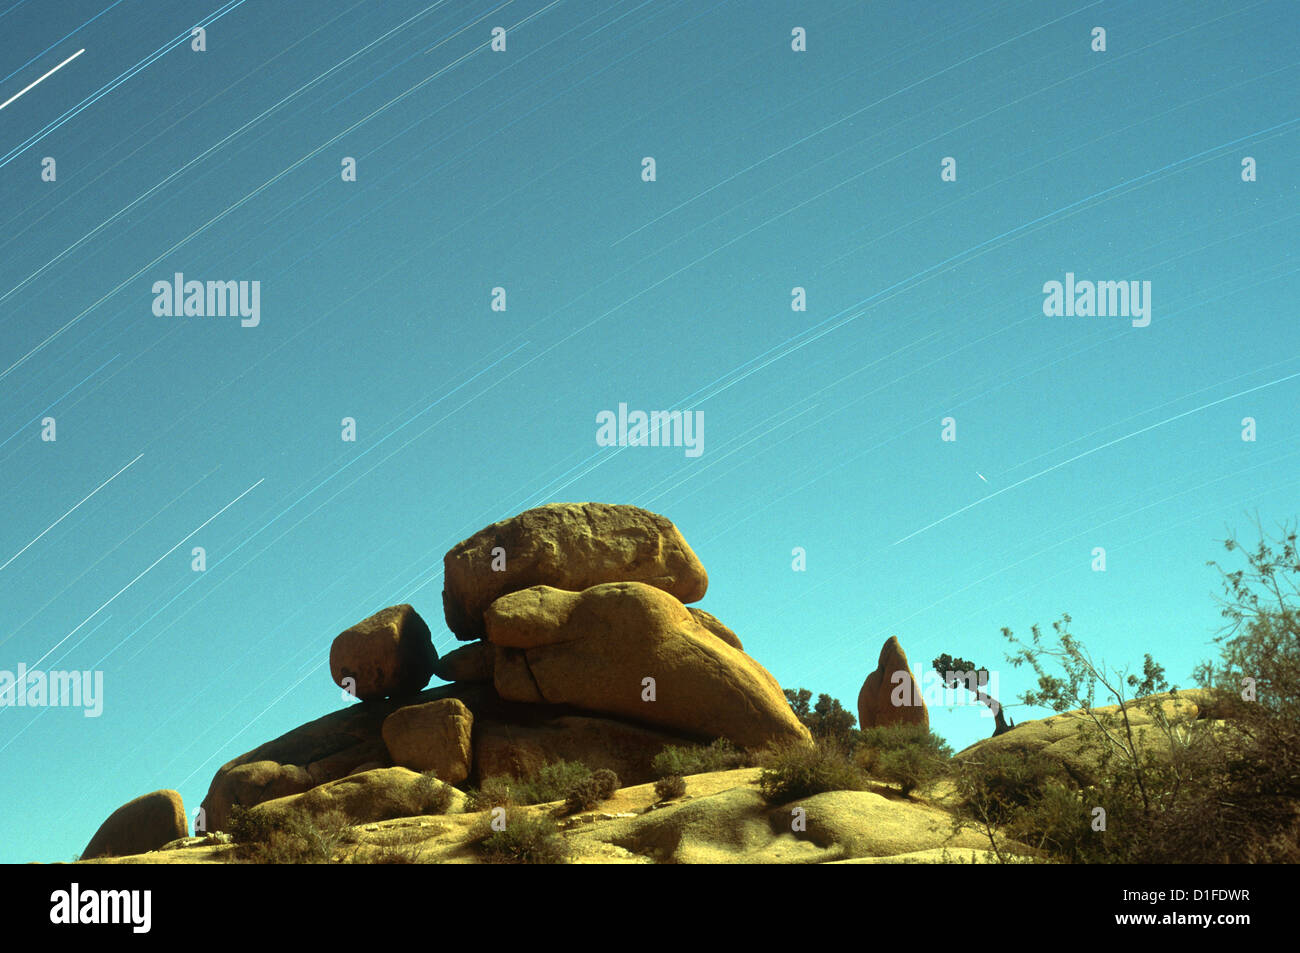 Time exposure of stars with rock formations in the foreground, Joshua Tree National Park, California, USA - Stock Image